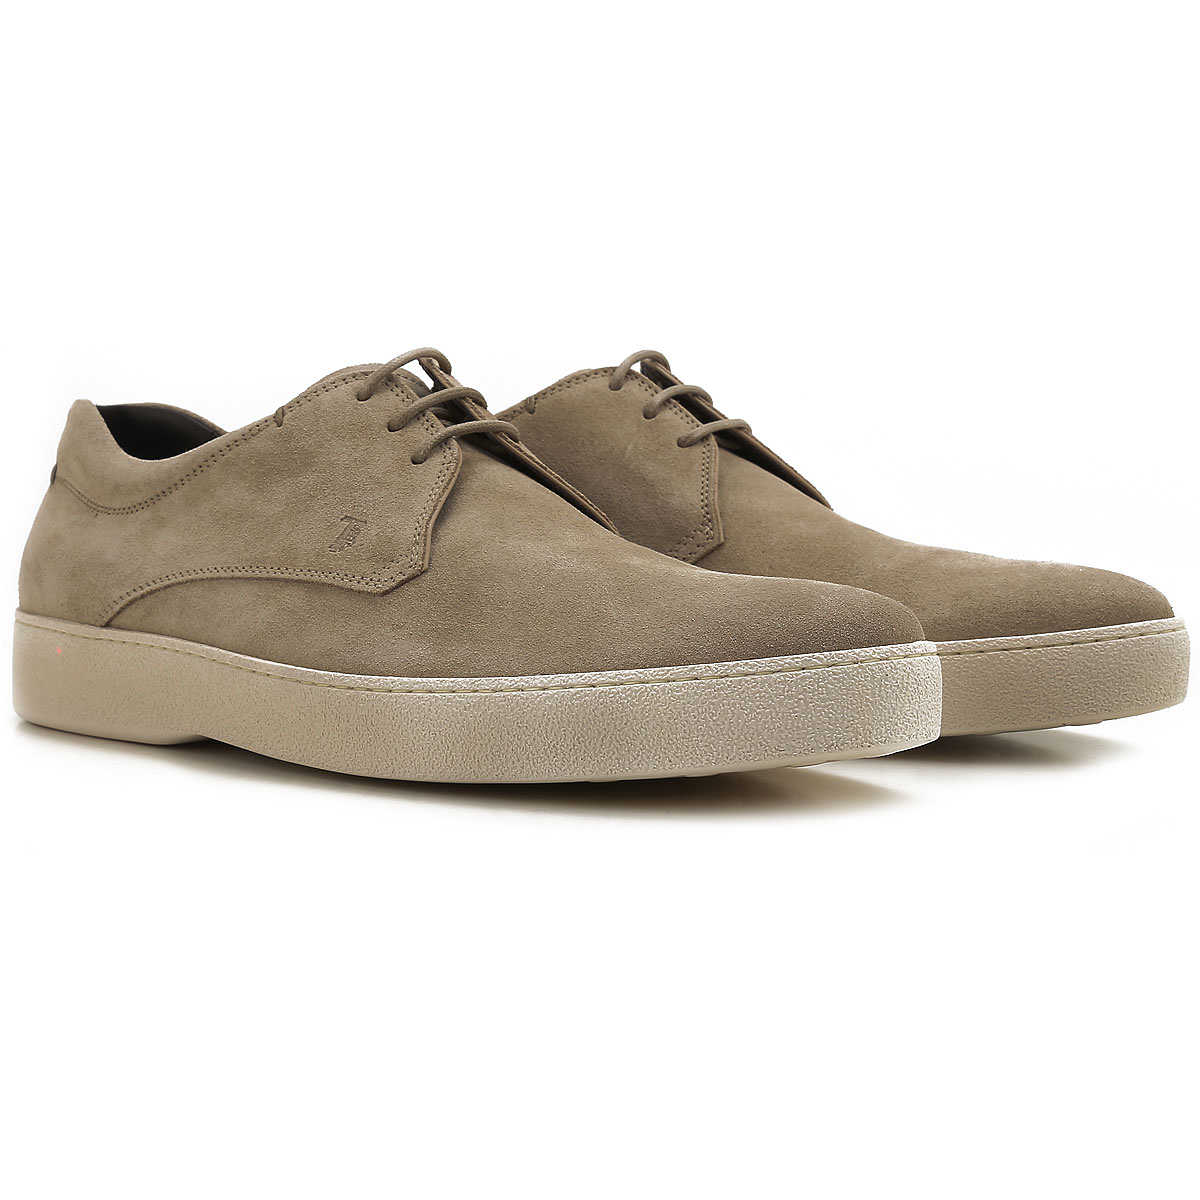 Tods Lace Up Shoes for Men Oxfords Derbies and Brogues On Sale in Outlet - GOOFASH